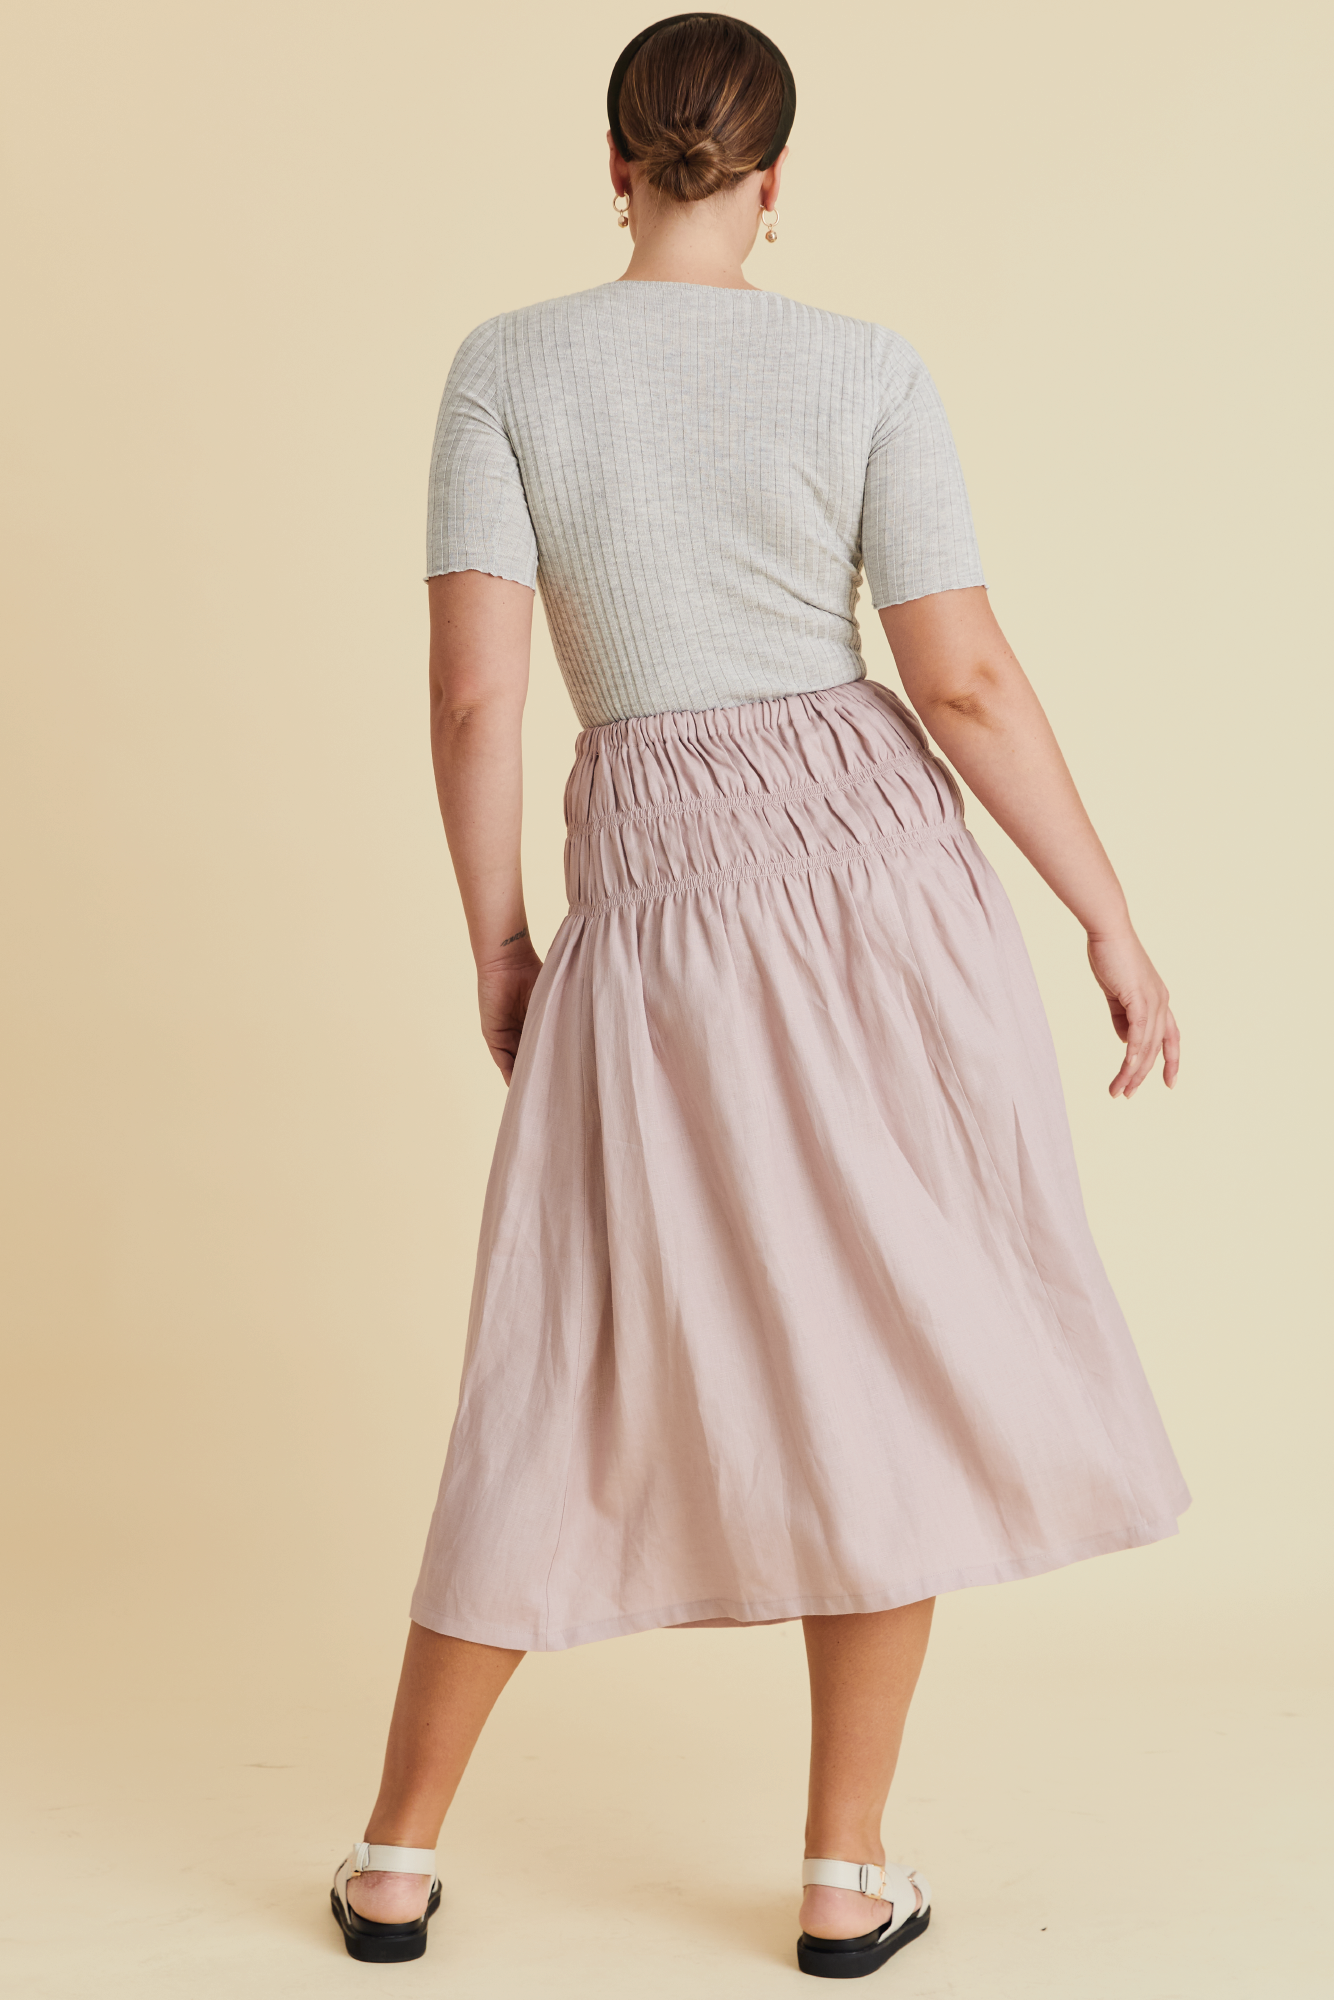 All For One Skirt in Marshmallow - hej hej